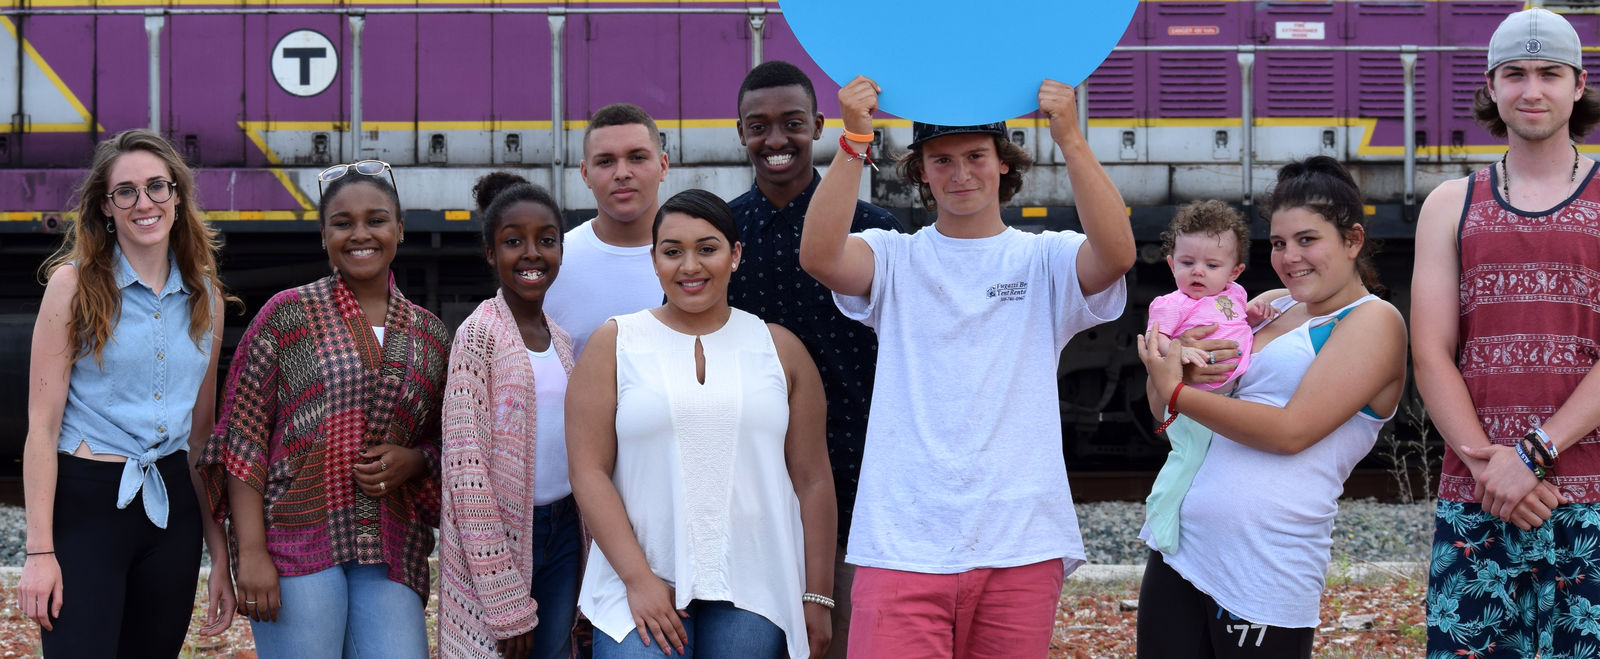 MAP Academy high school students hold up their school sign in front of a passing commuter rail train.